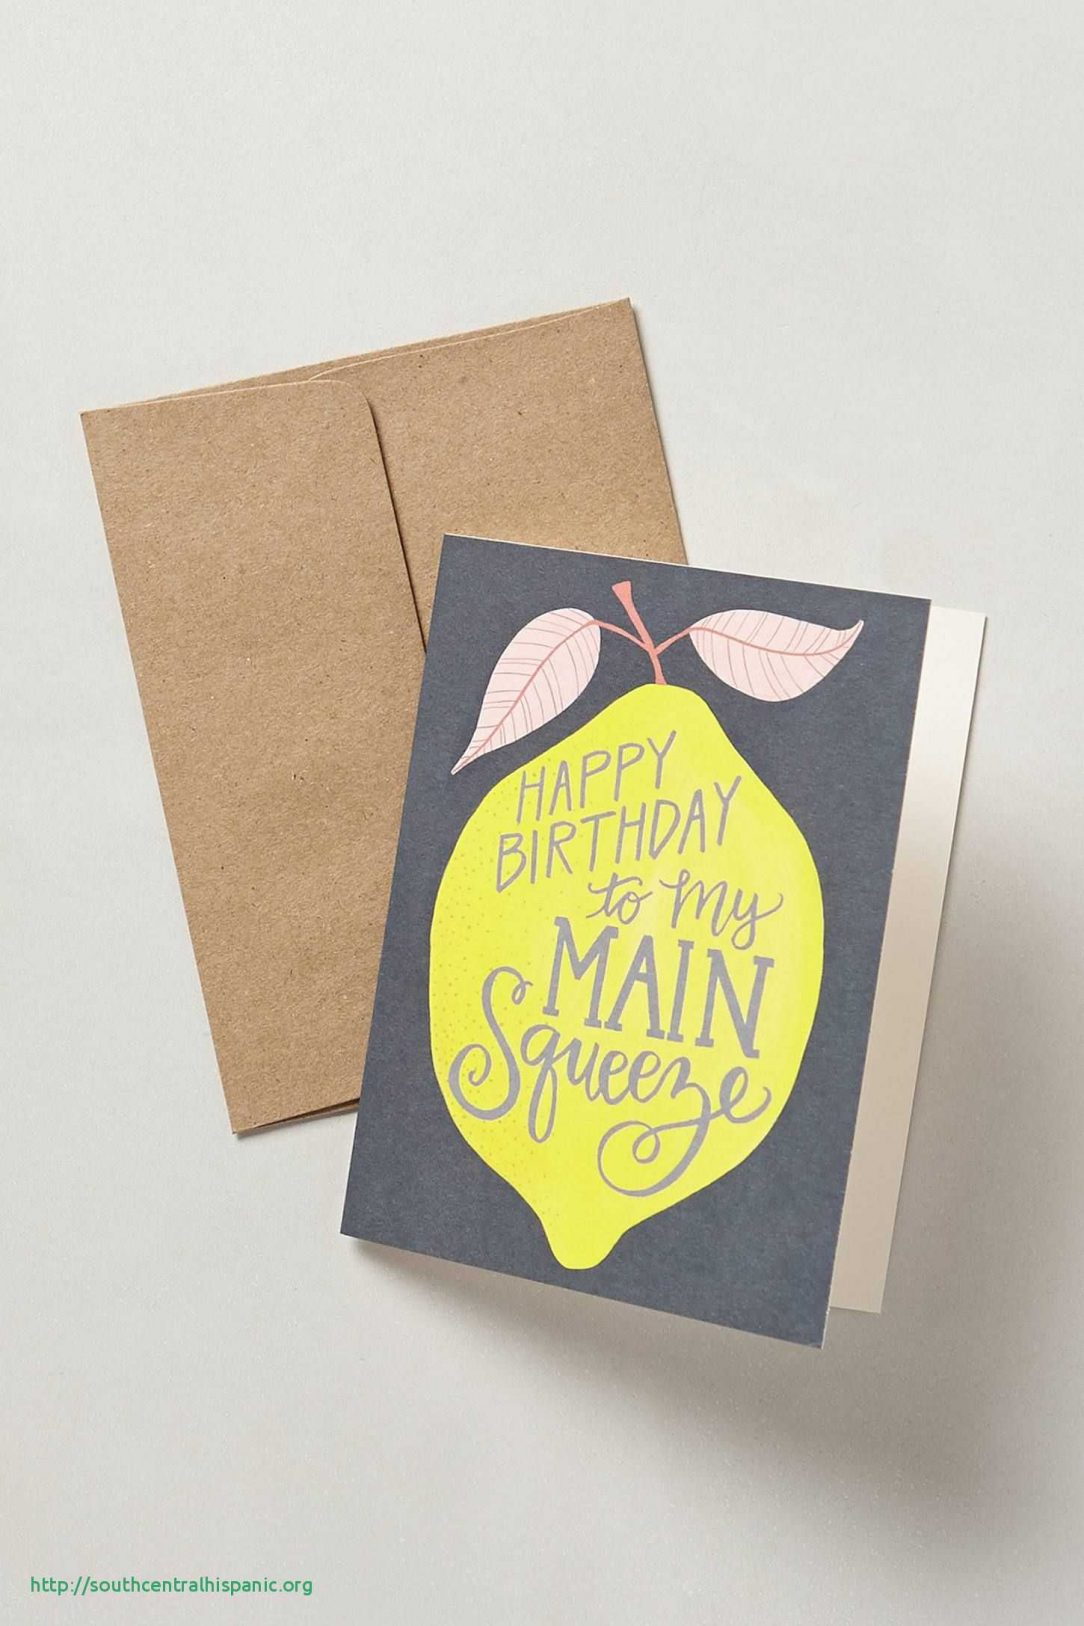 Birthday Card Ideas For Dad From Daughter Funny Birthday Card Ideas For Dad From Daughter Homemade Happy